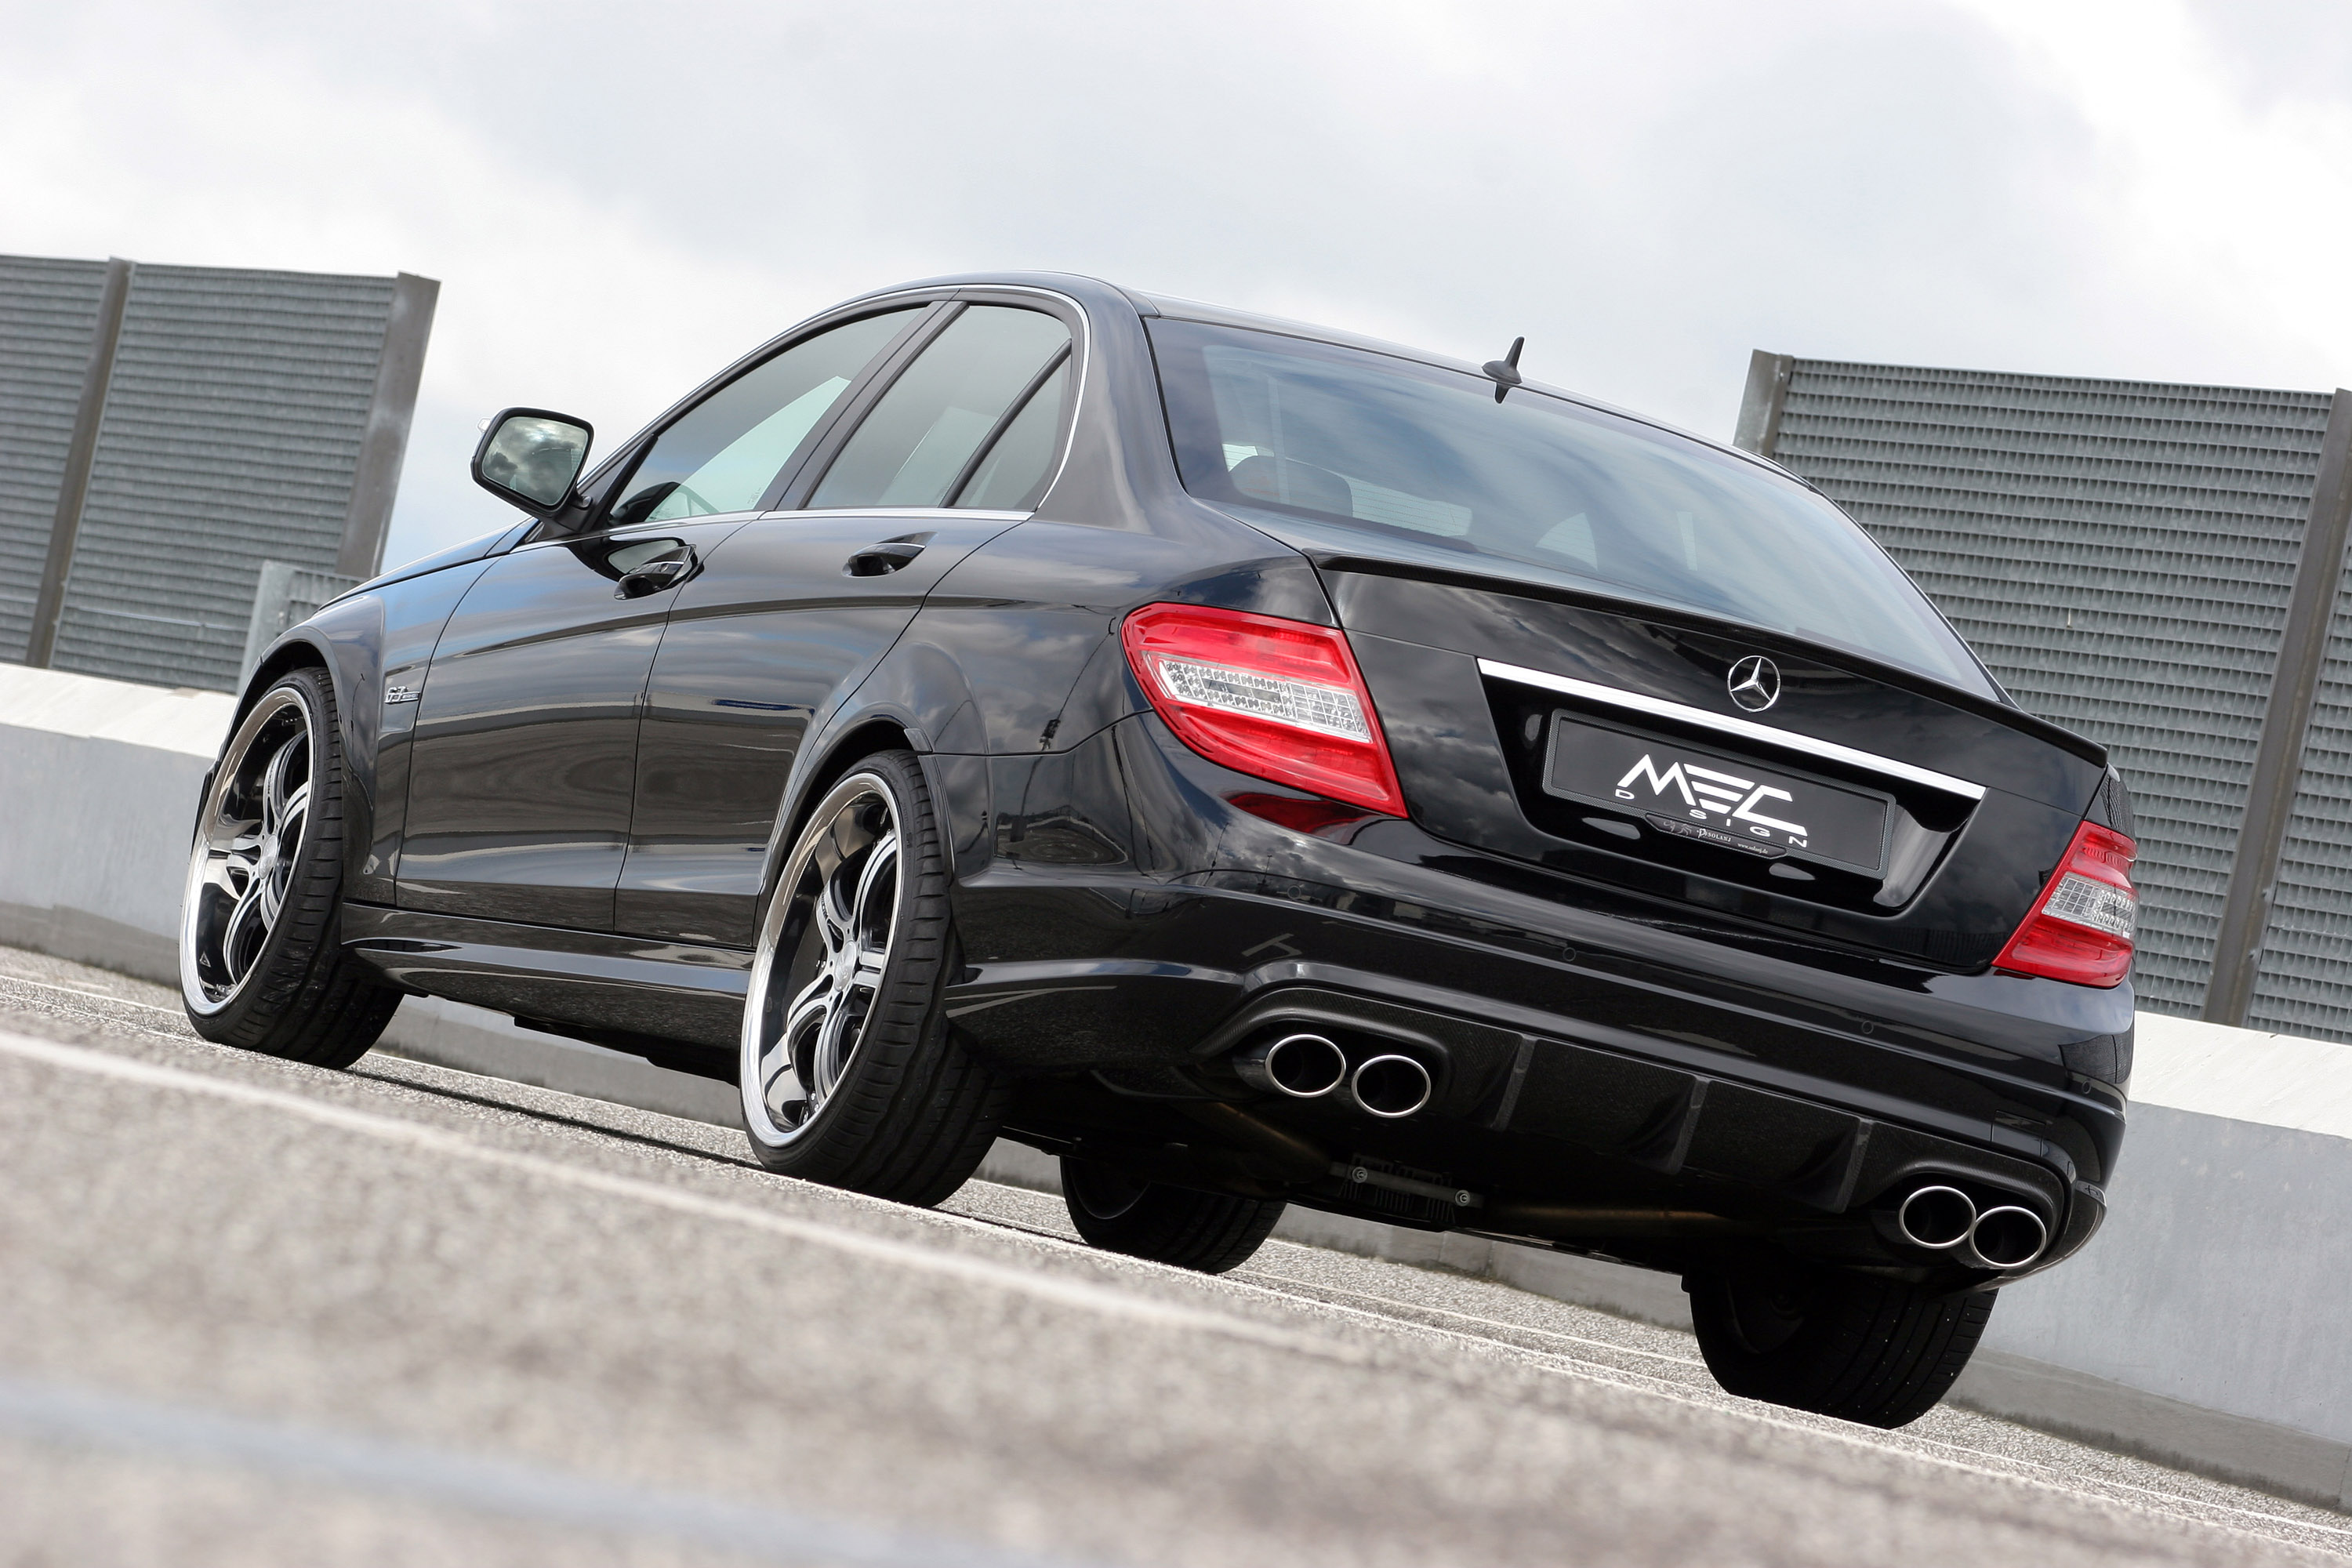 Cool Review About 2010 C63 with Interesting